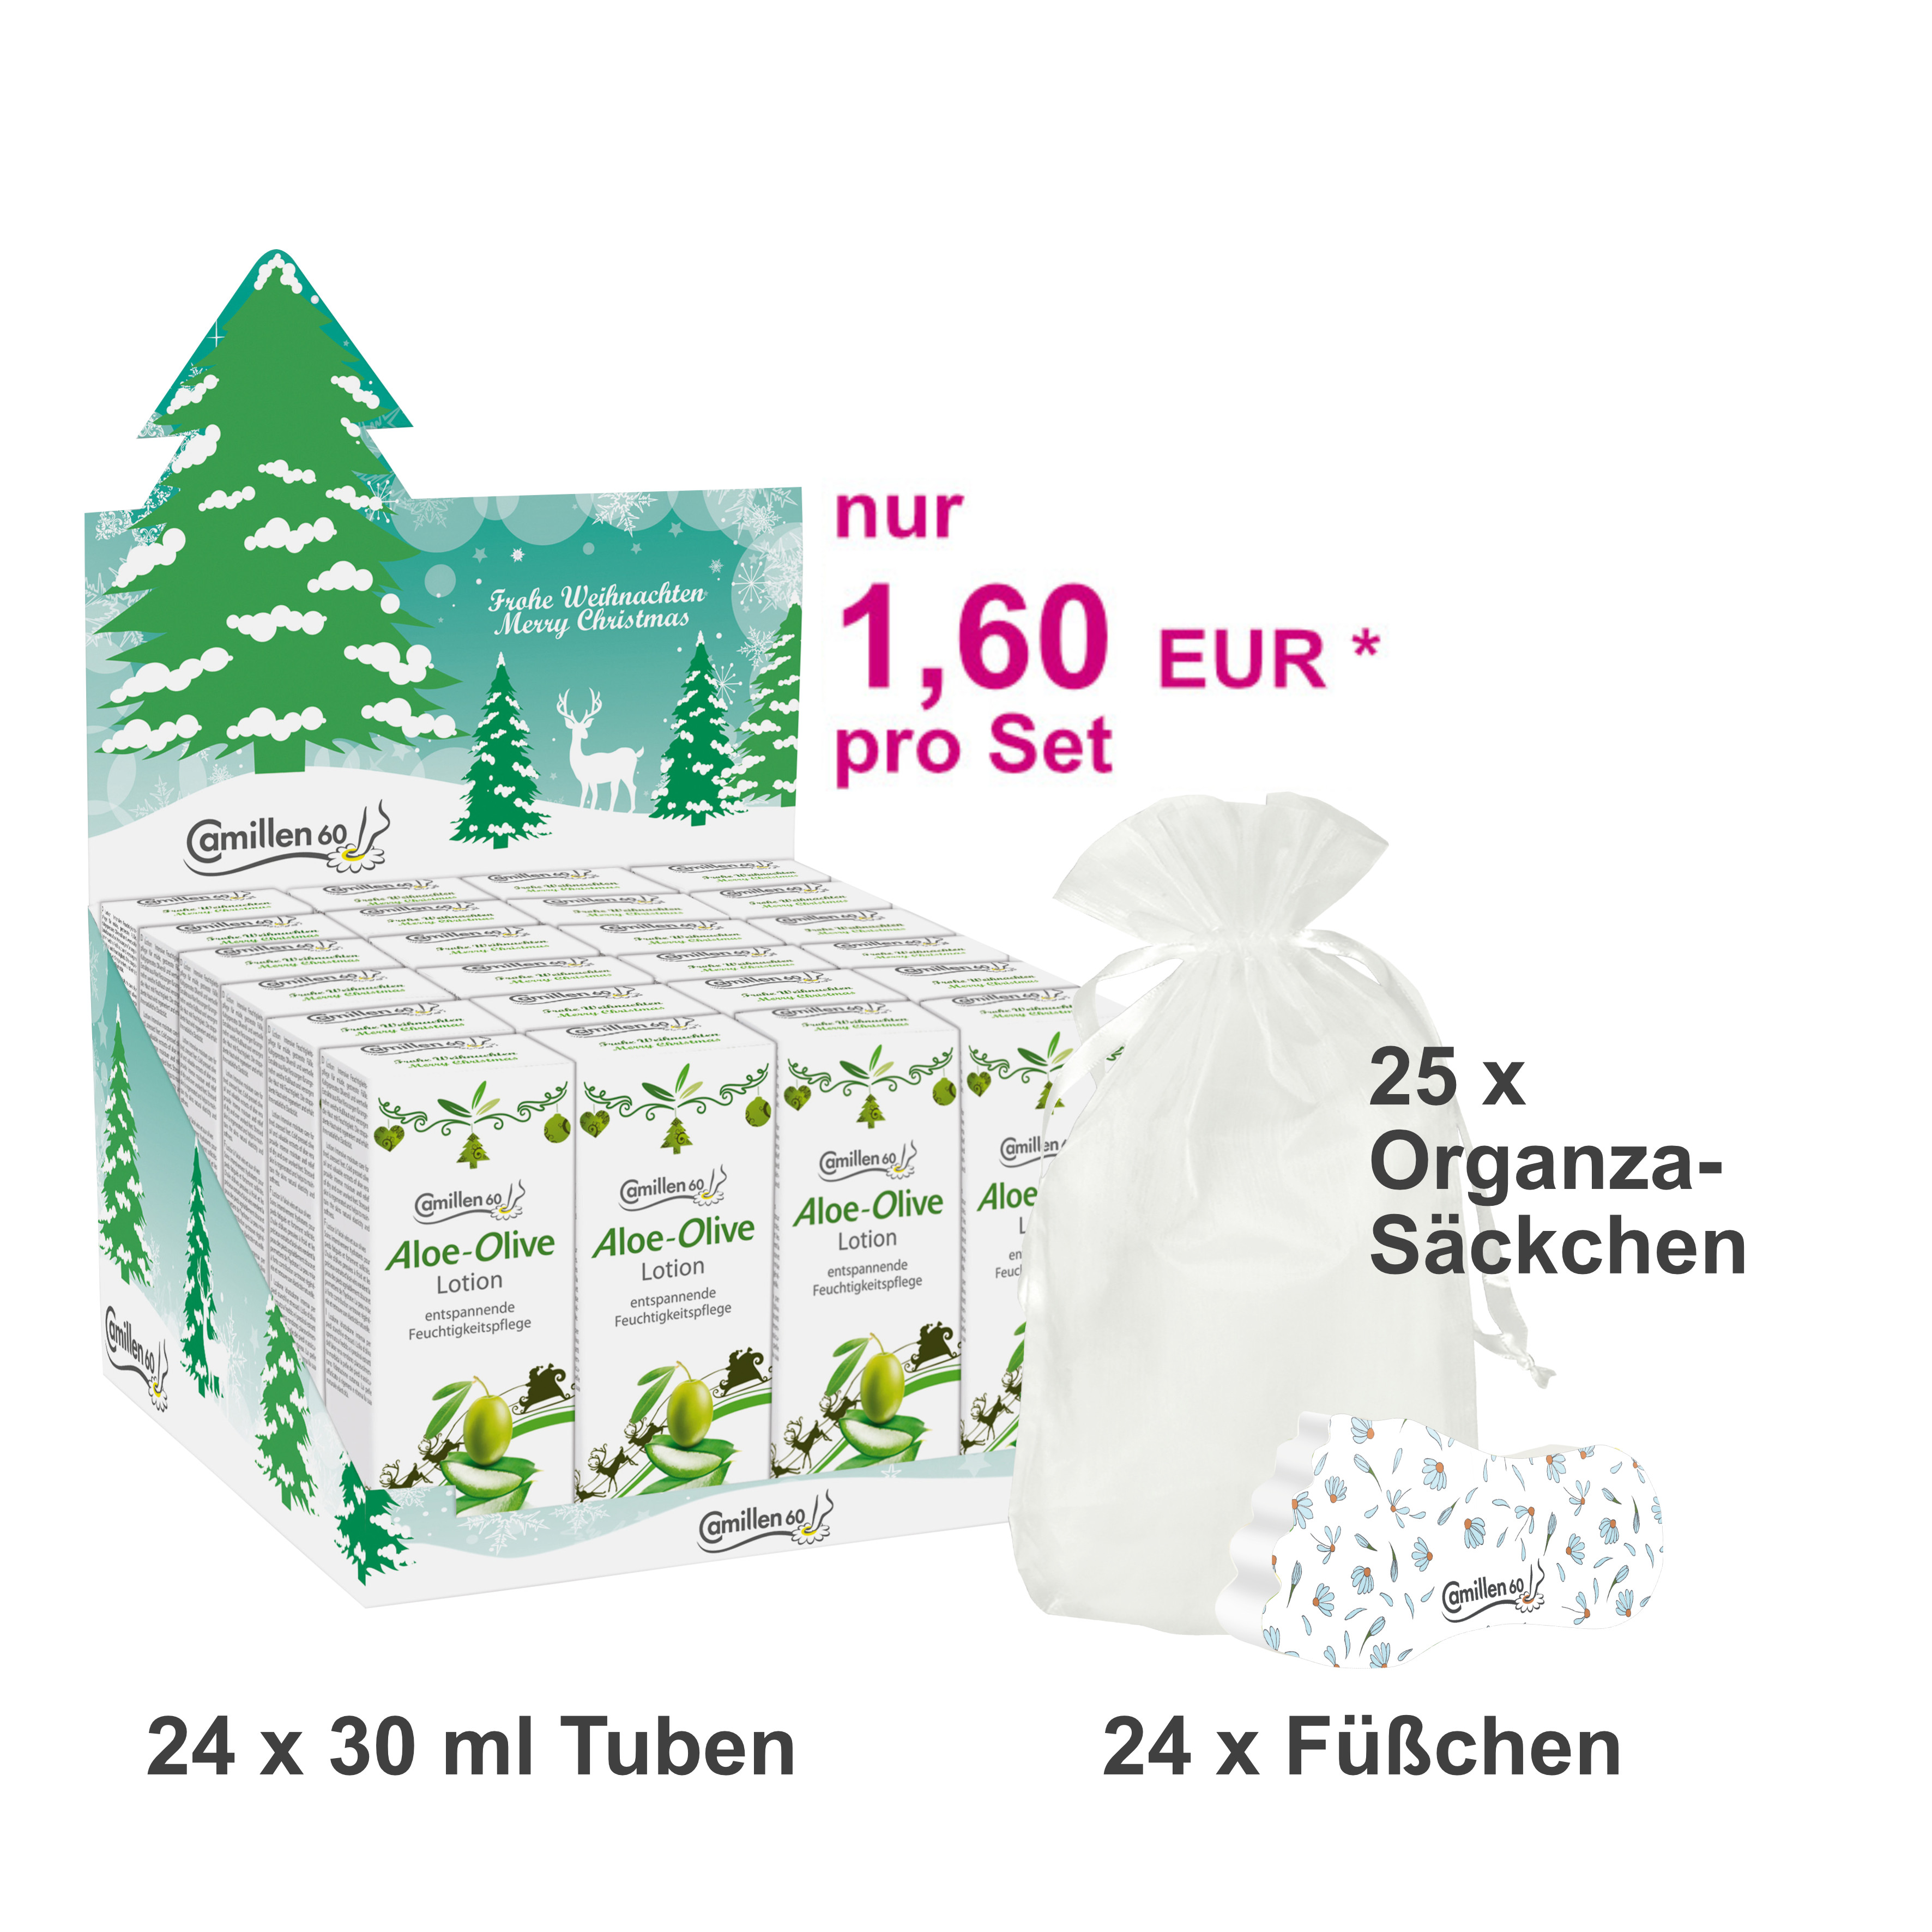 24 Weihnachts-Sets LOTION ALOE-OLIVE